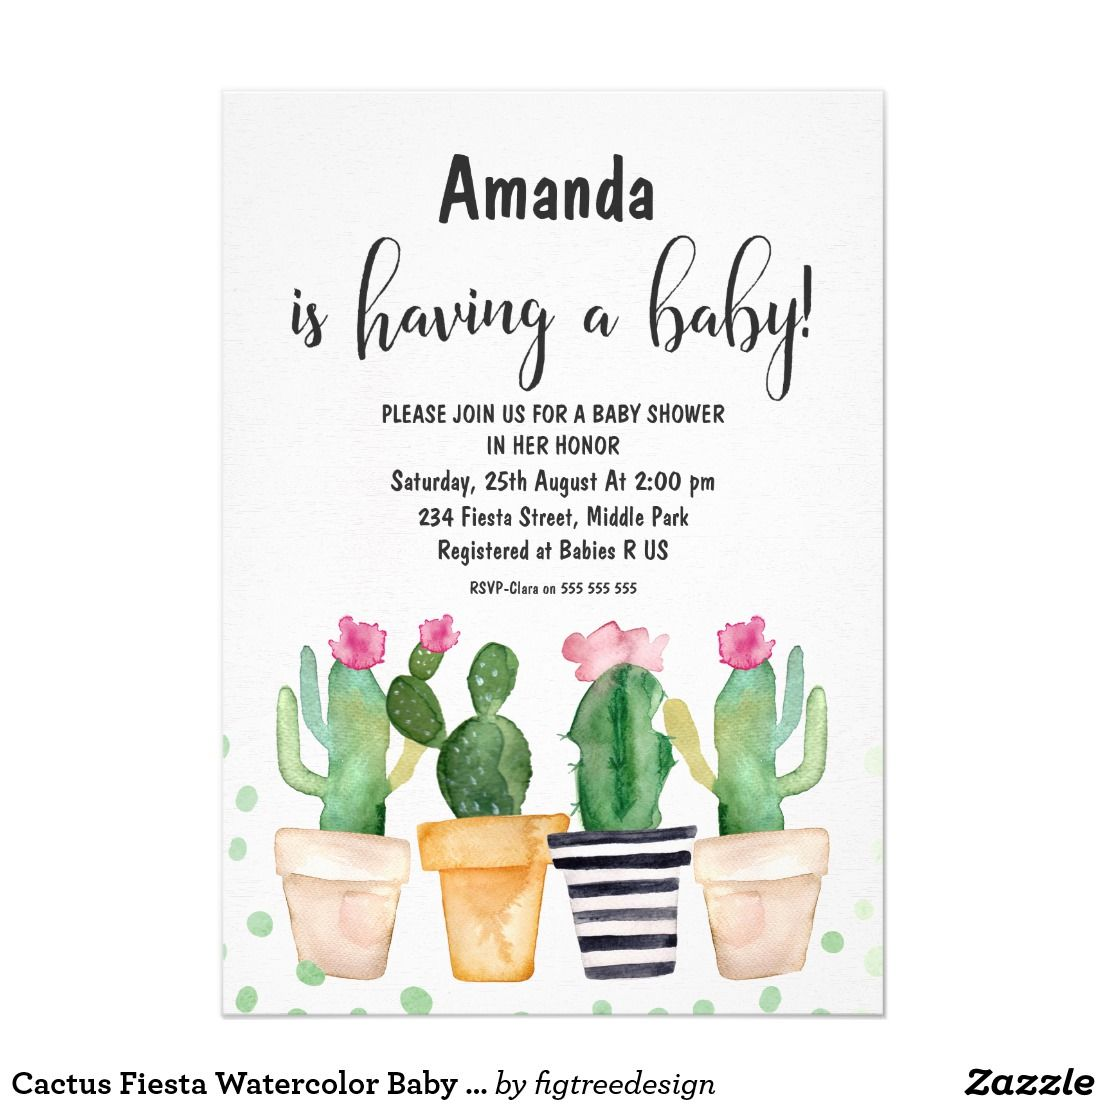 e84c4da1c864 1106x1106 Cactus Fiesta Watercolor Baby Shower Invitation   Oh Baby